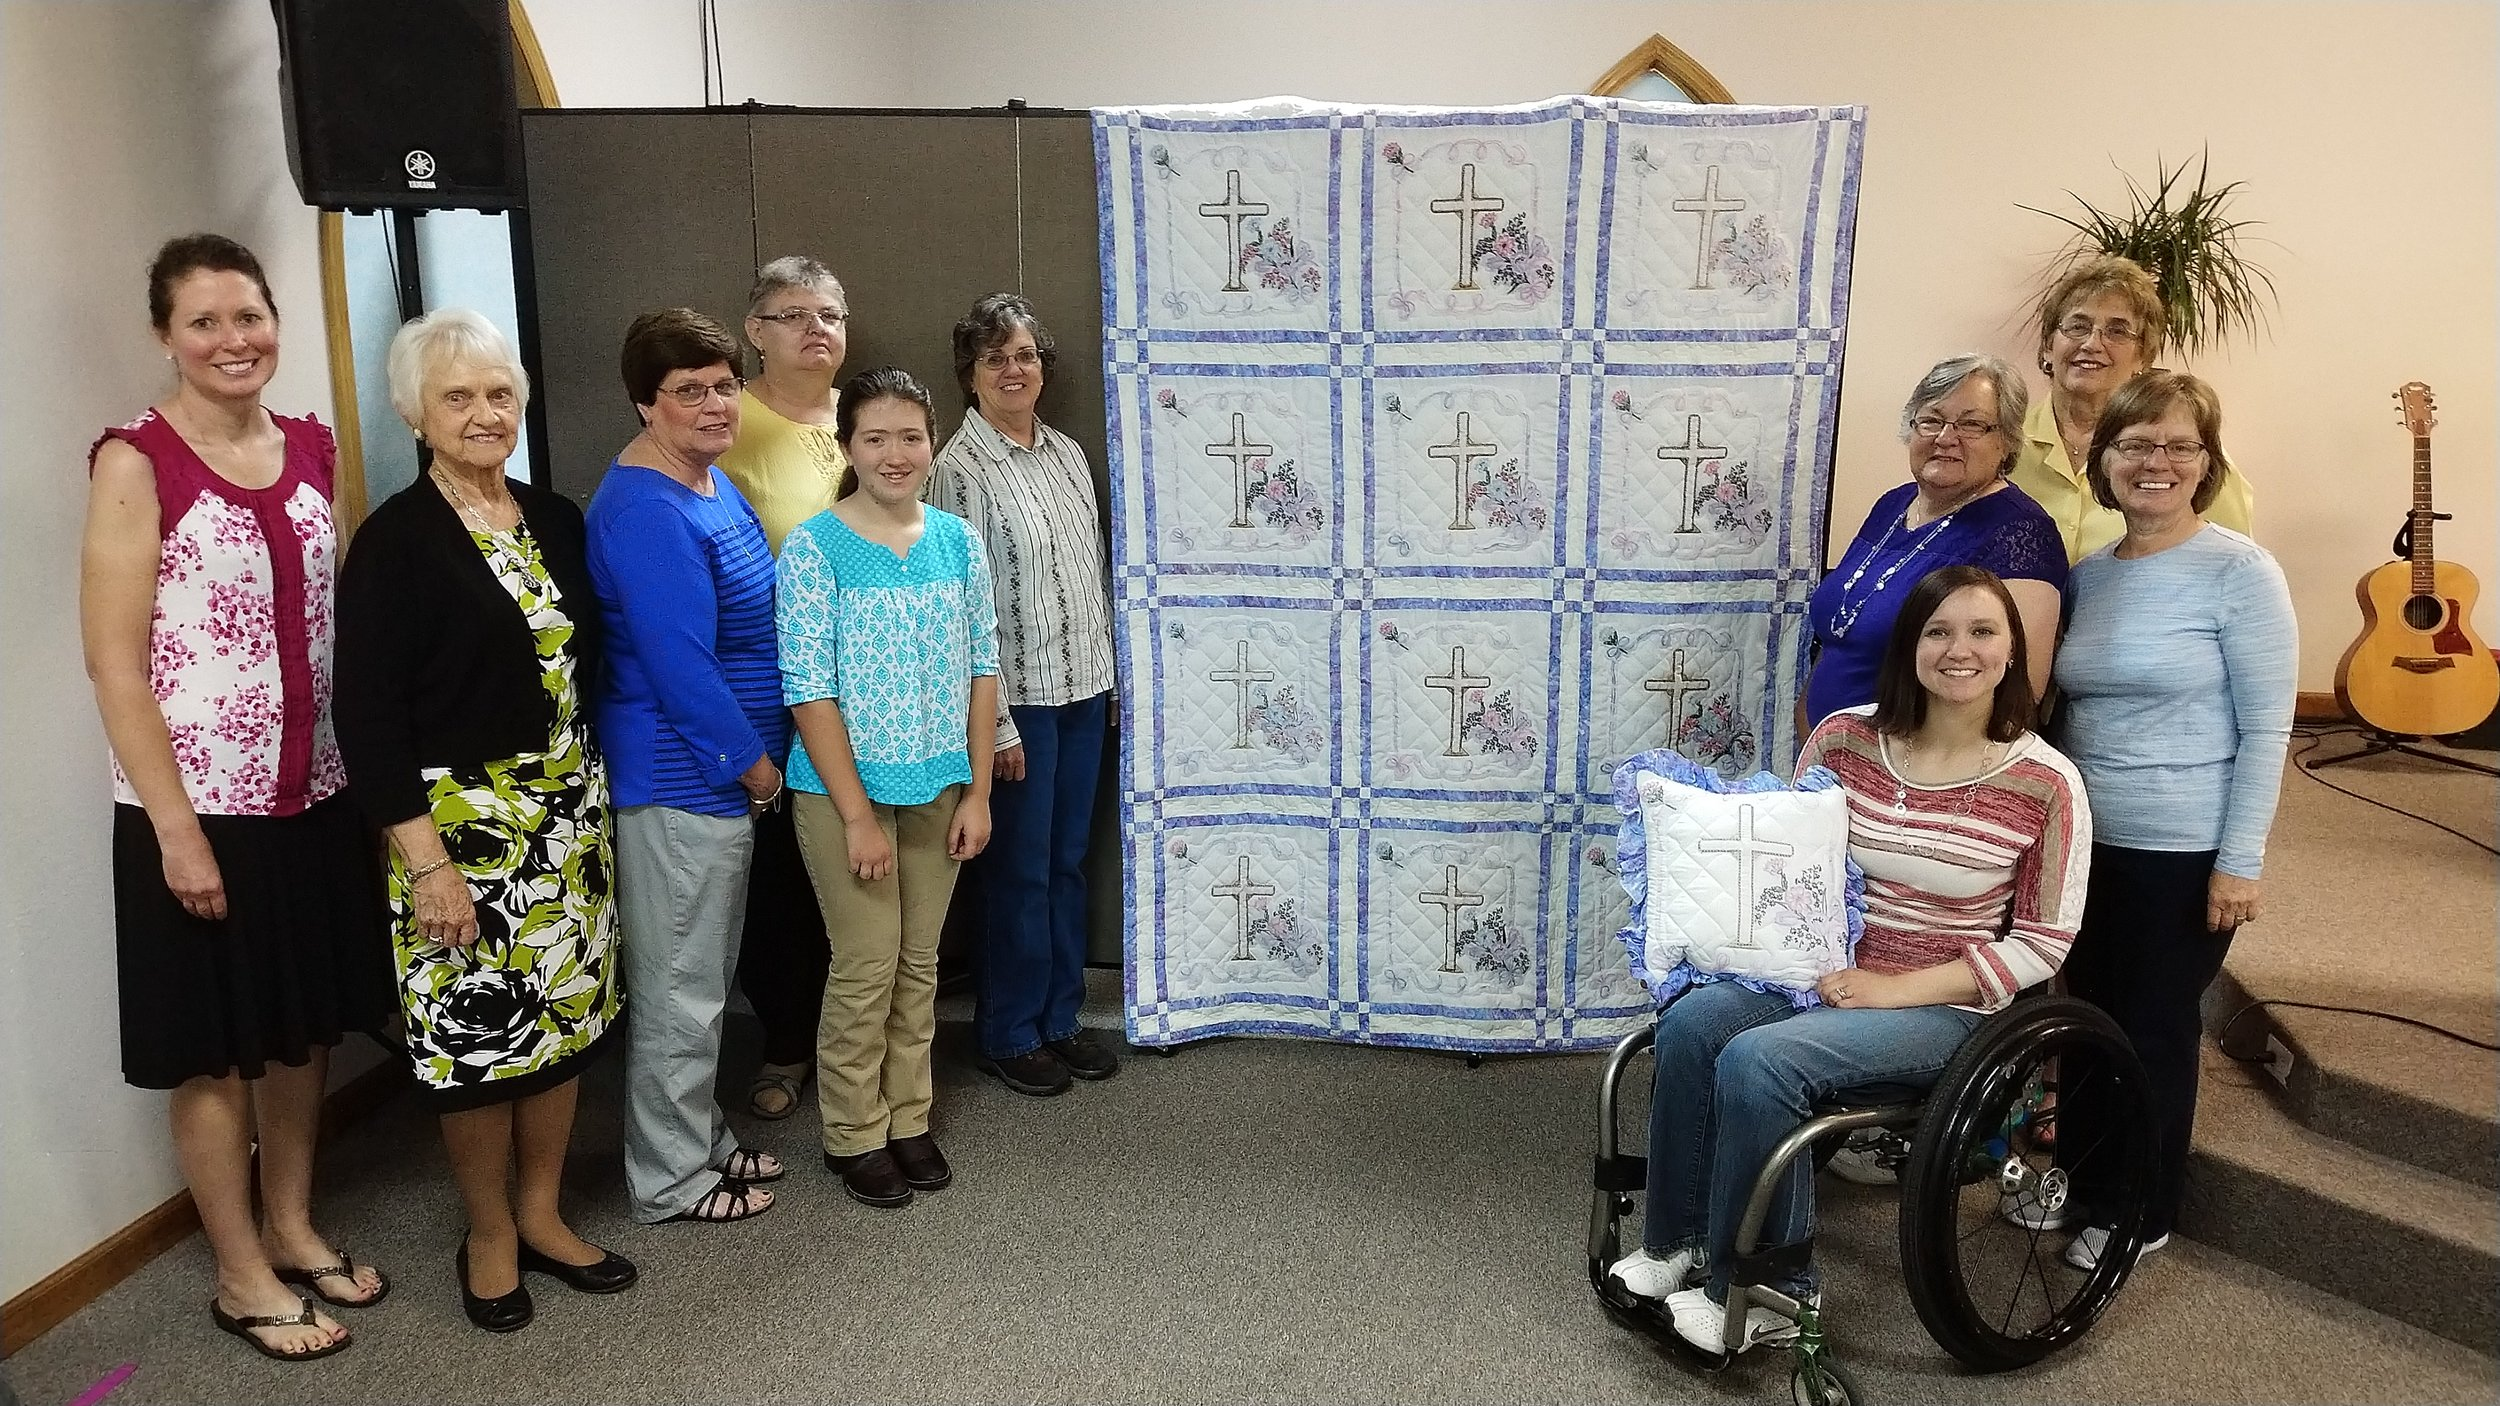 The dedicated ladies who helped with the Strawberry Festival quilt.  From left to right: Amy Brown, Bonnie Stone, Ruth David, Debbie Wheeler, Faith Brown, Carolyn Maupin, Becky Blackwell, Judy Colbert, Cathy Mitchell, and RhoAnn Hanes.